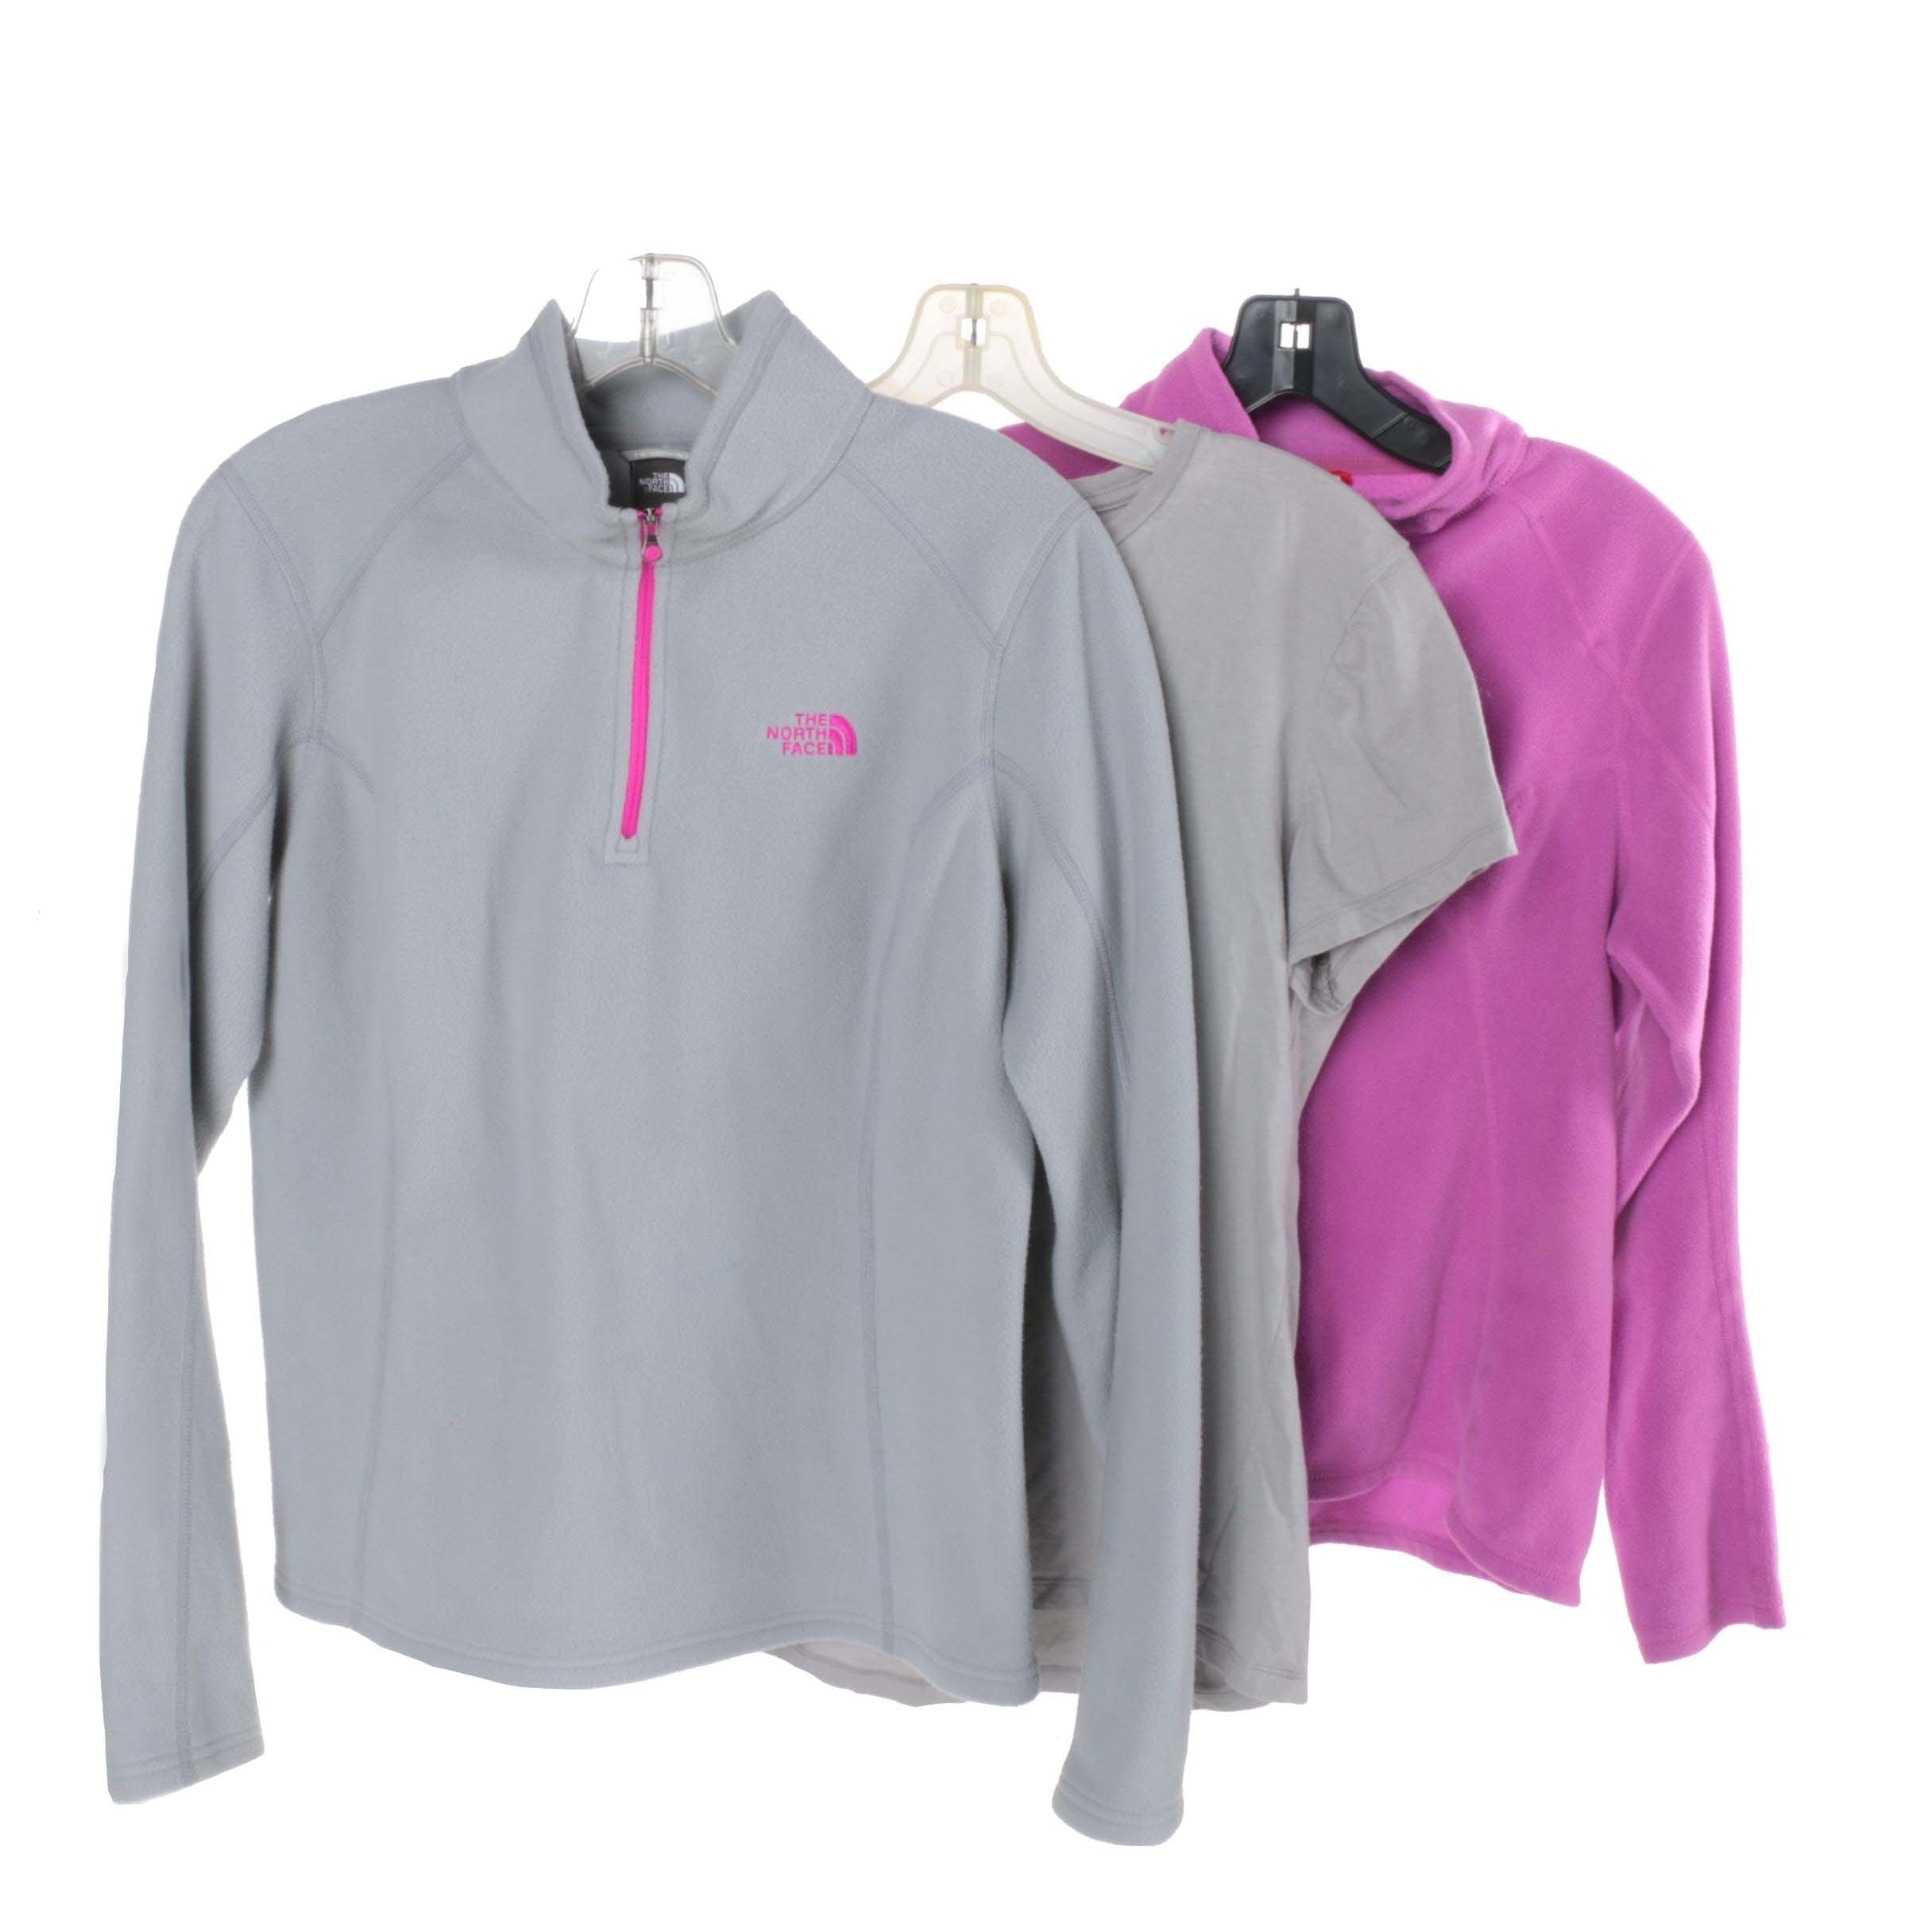 Women's The North Face Pullovers and T-shirt